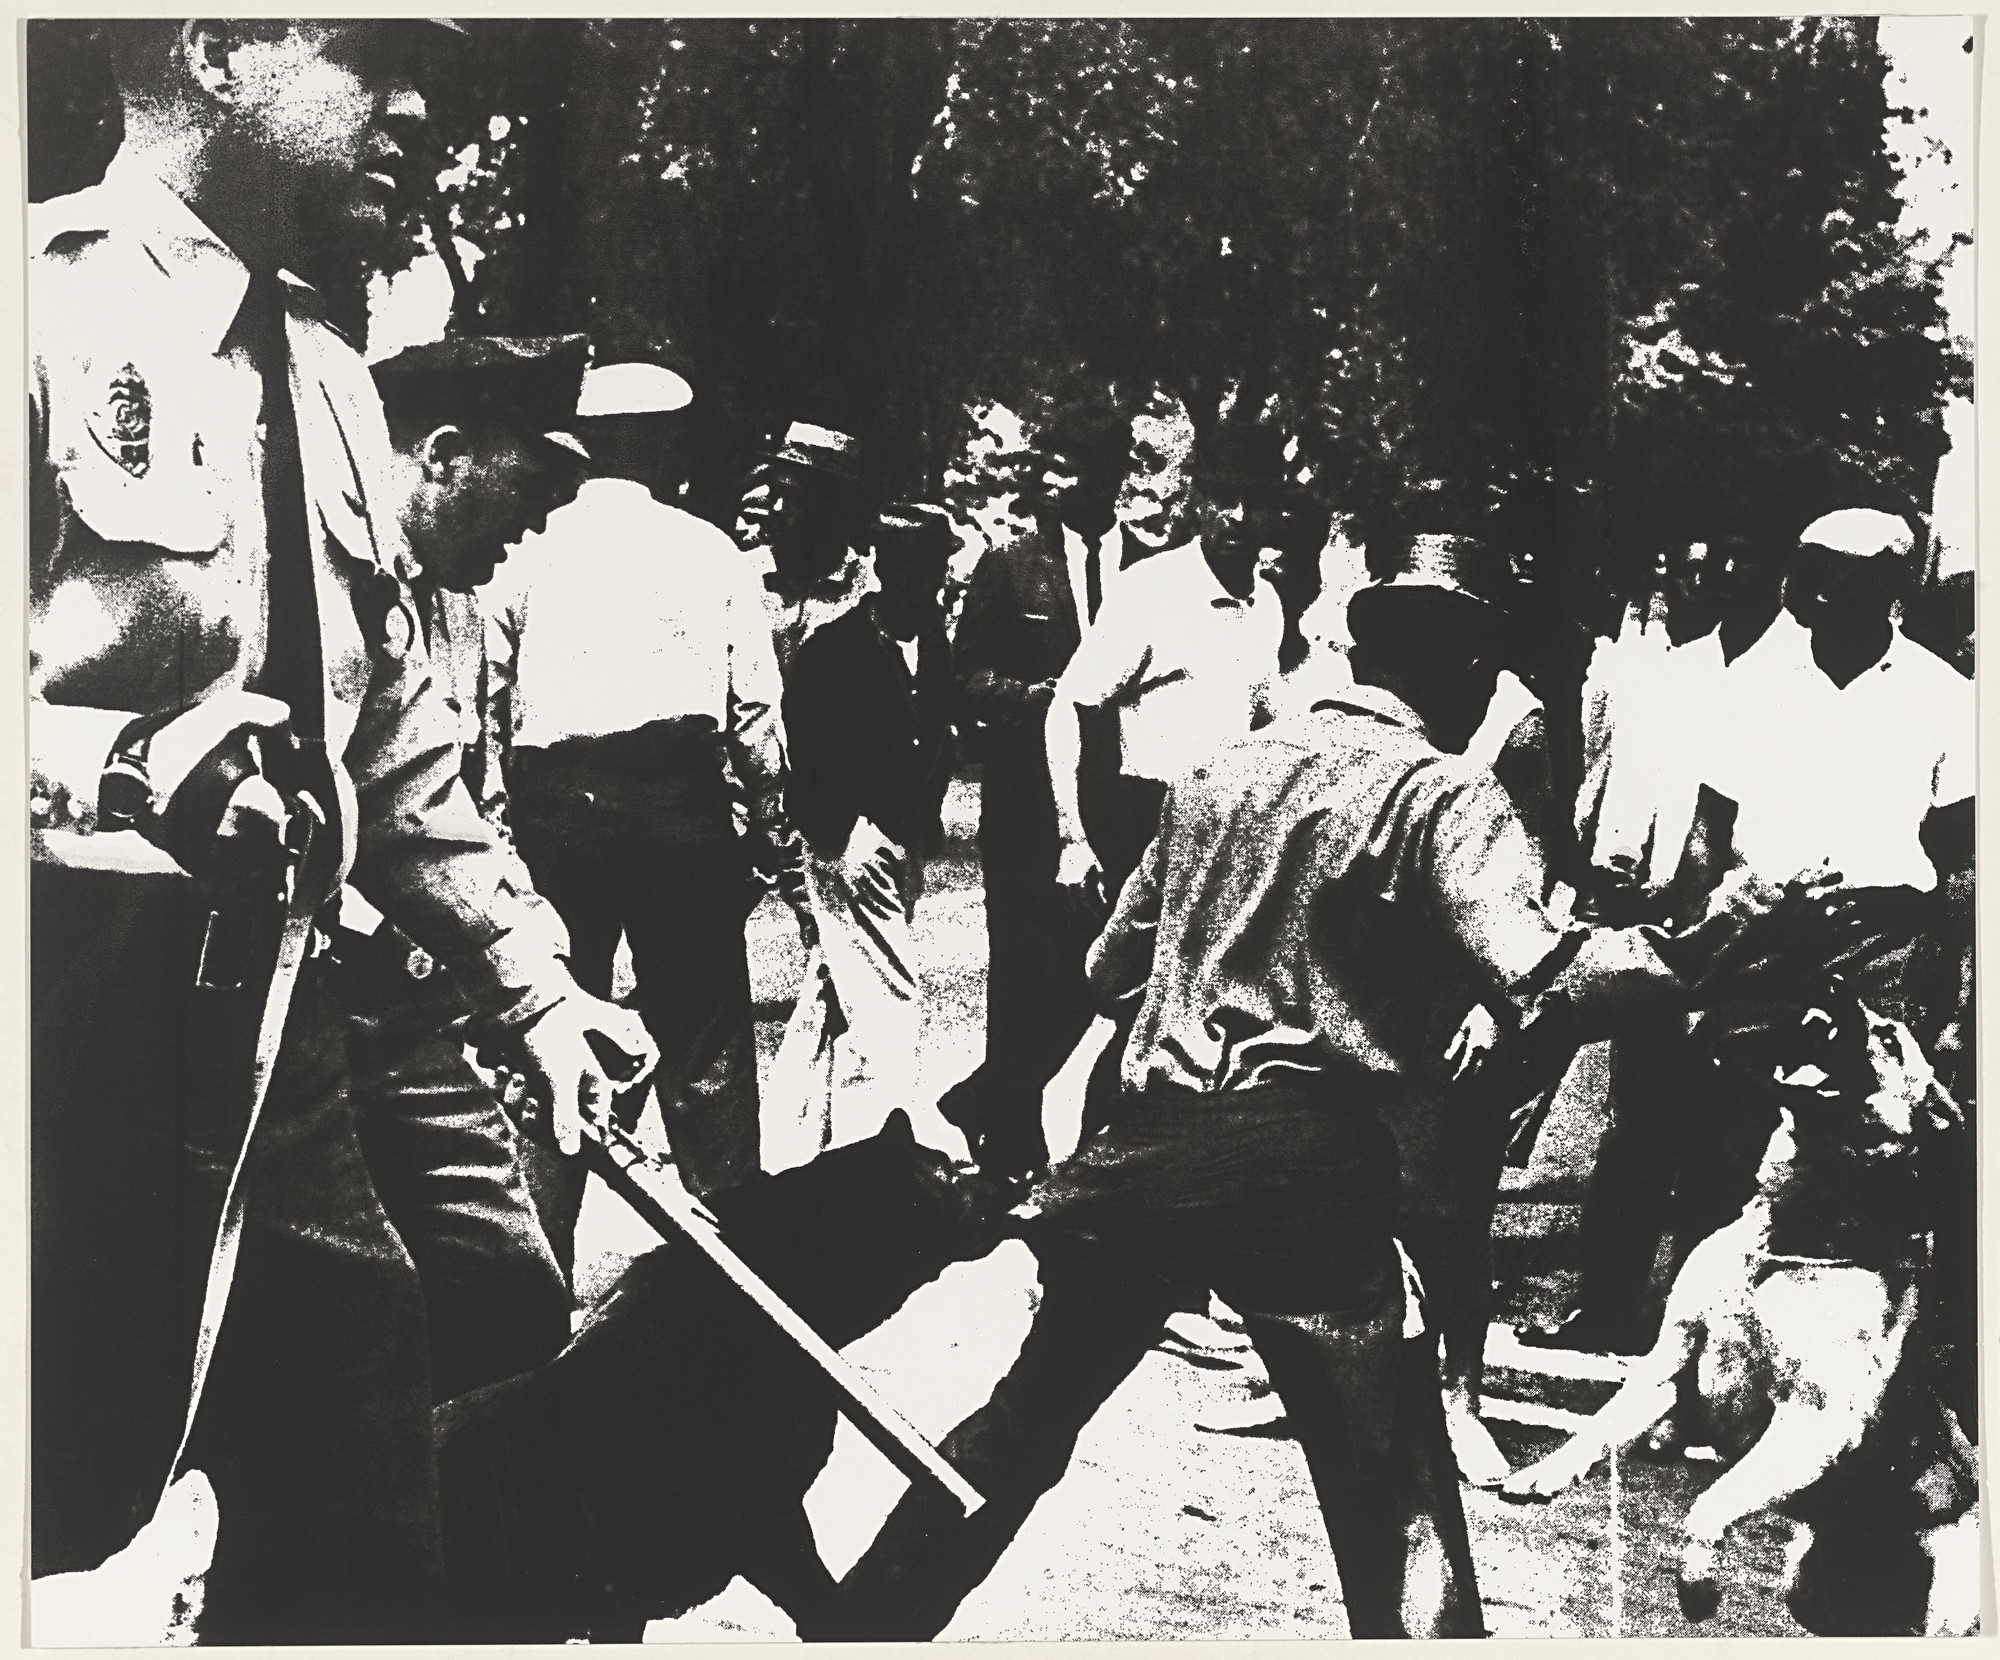 Andy Warhol. Birmingham Race Riot from X + X (Ten Works by Ten Painters). 1964